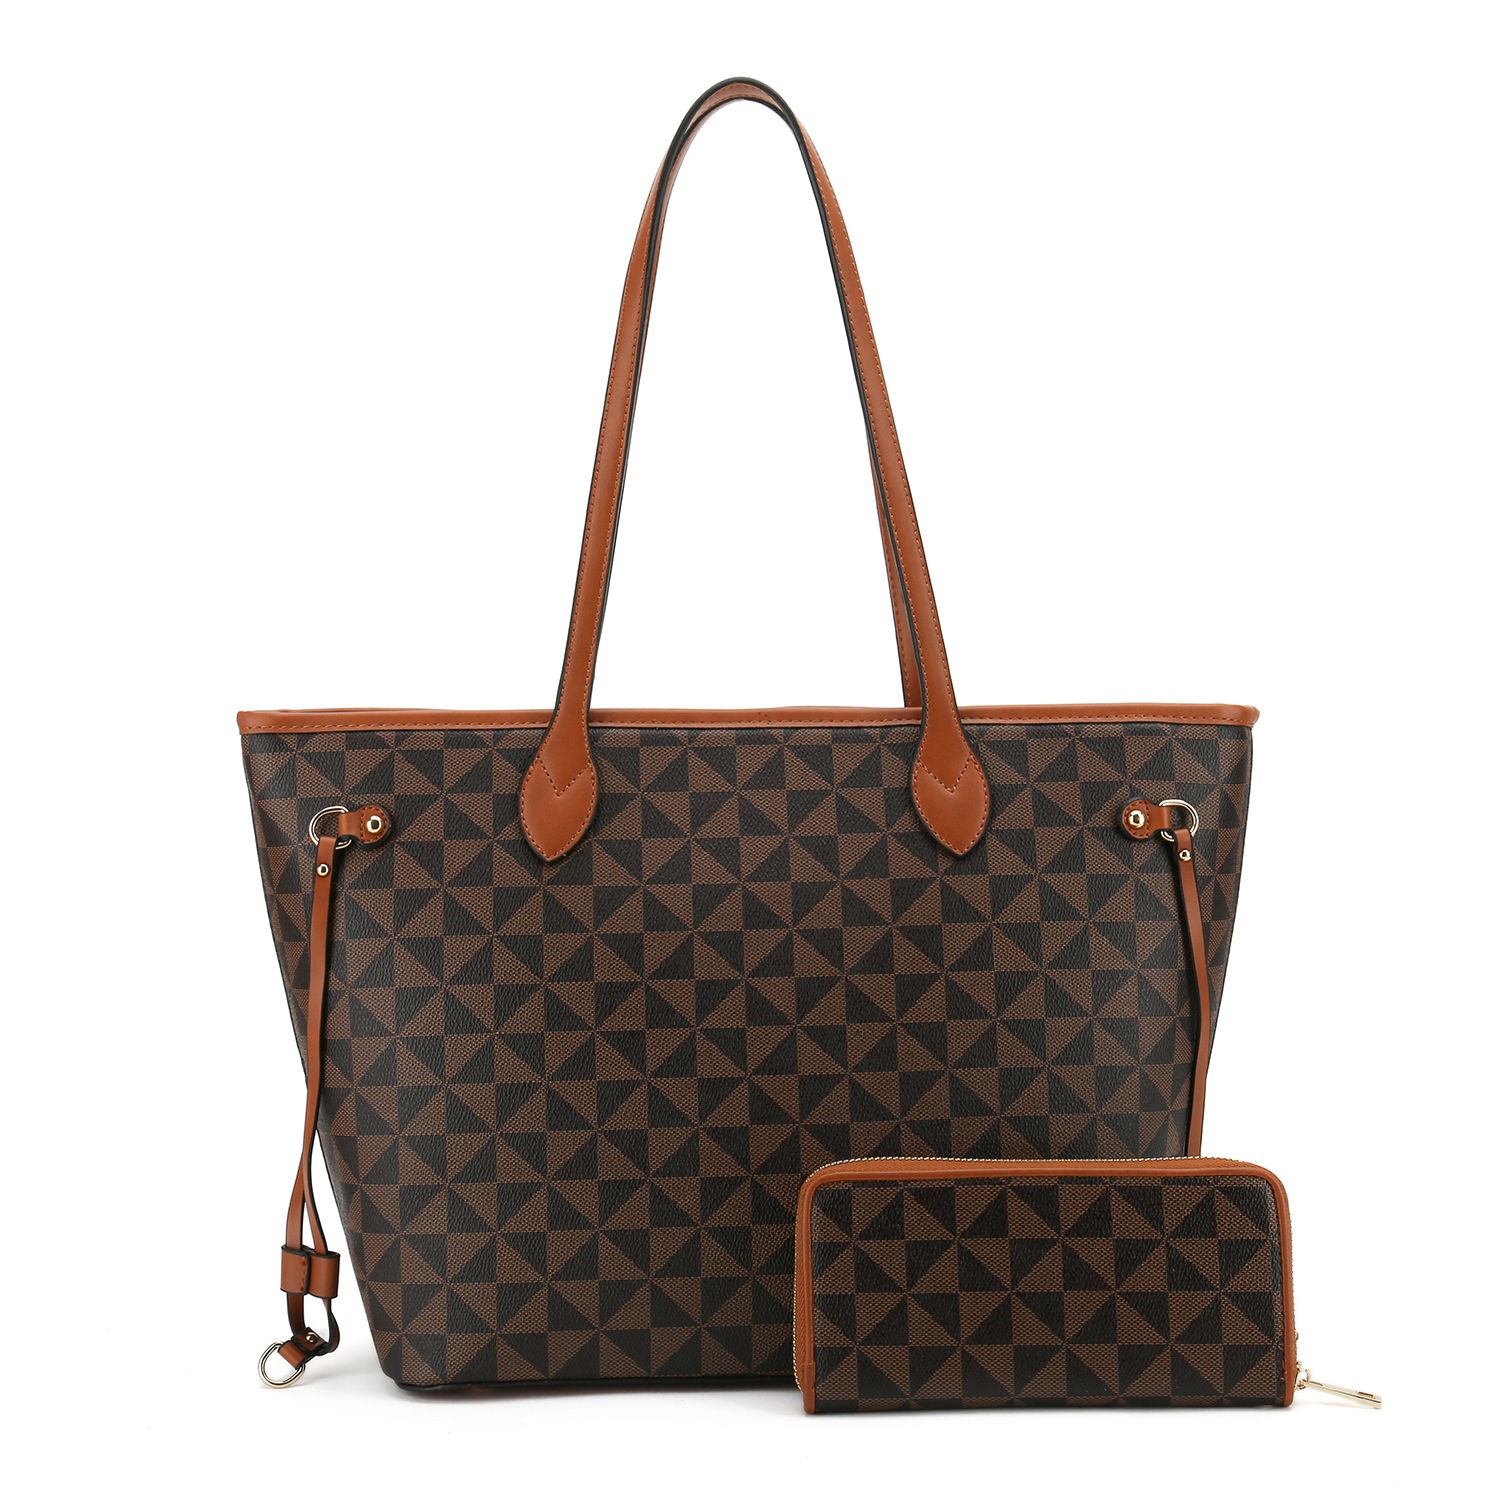 US$ 41.99 - RICHPORTS Women Luxury Handbags Top Brand Leather Totes Bag Large Capacity Shopping Shoulder Bags Lady Famous Designer Travel Tote For ...